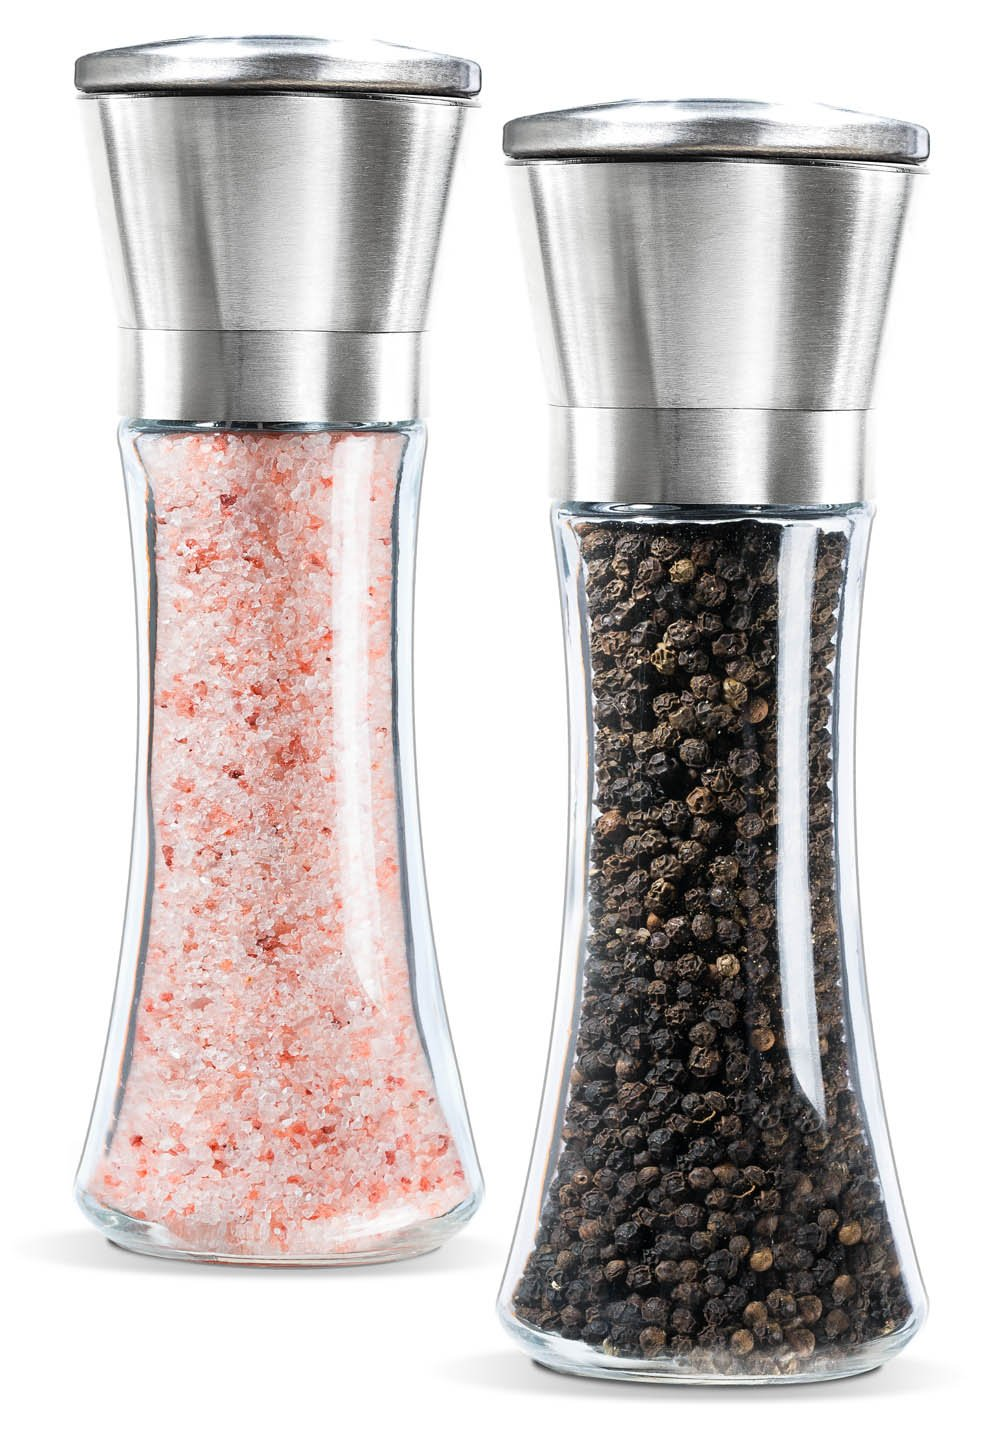 Levav Premium Salt and Pepper Grinder Set of 2- Brushed Stainless Steel Pepper Mill and Salt Mill, 6 Oz Glass Tall Body, 5 Grade Adjustable Ceramic Rotor- Salt and Pepper Shakers by Levav